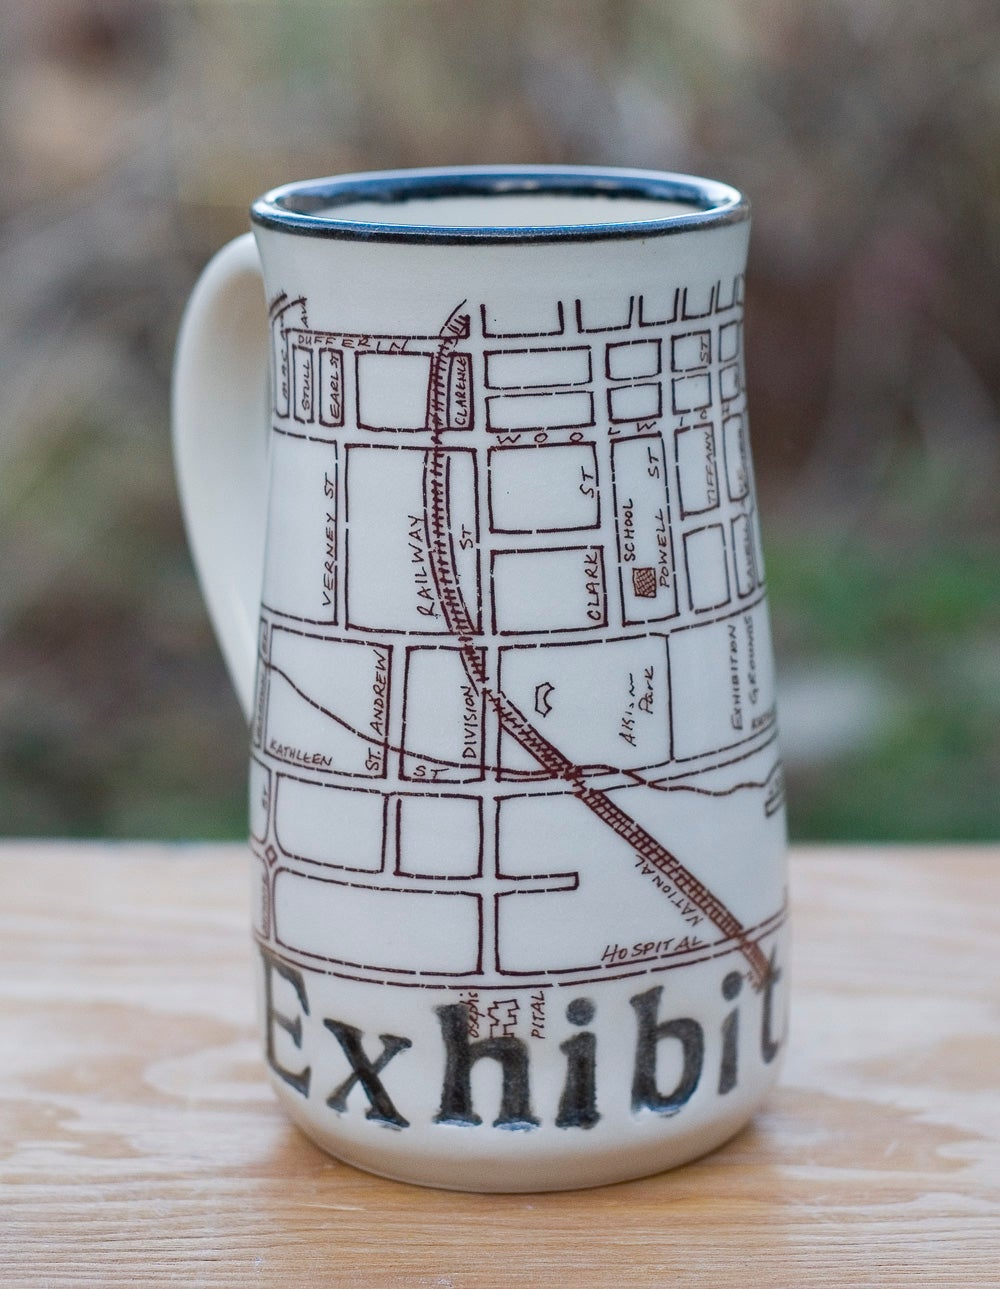 Image of Guelph Inspired 'Exhibition' Park Mug by Bunny Safari